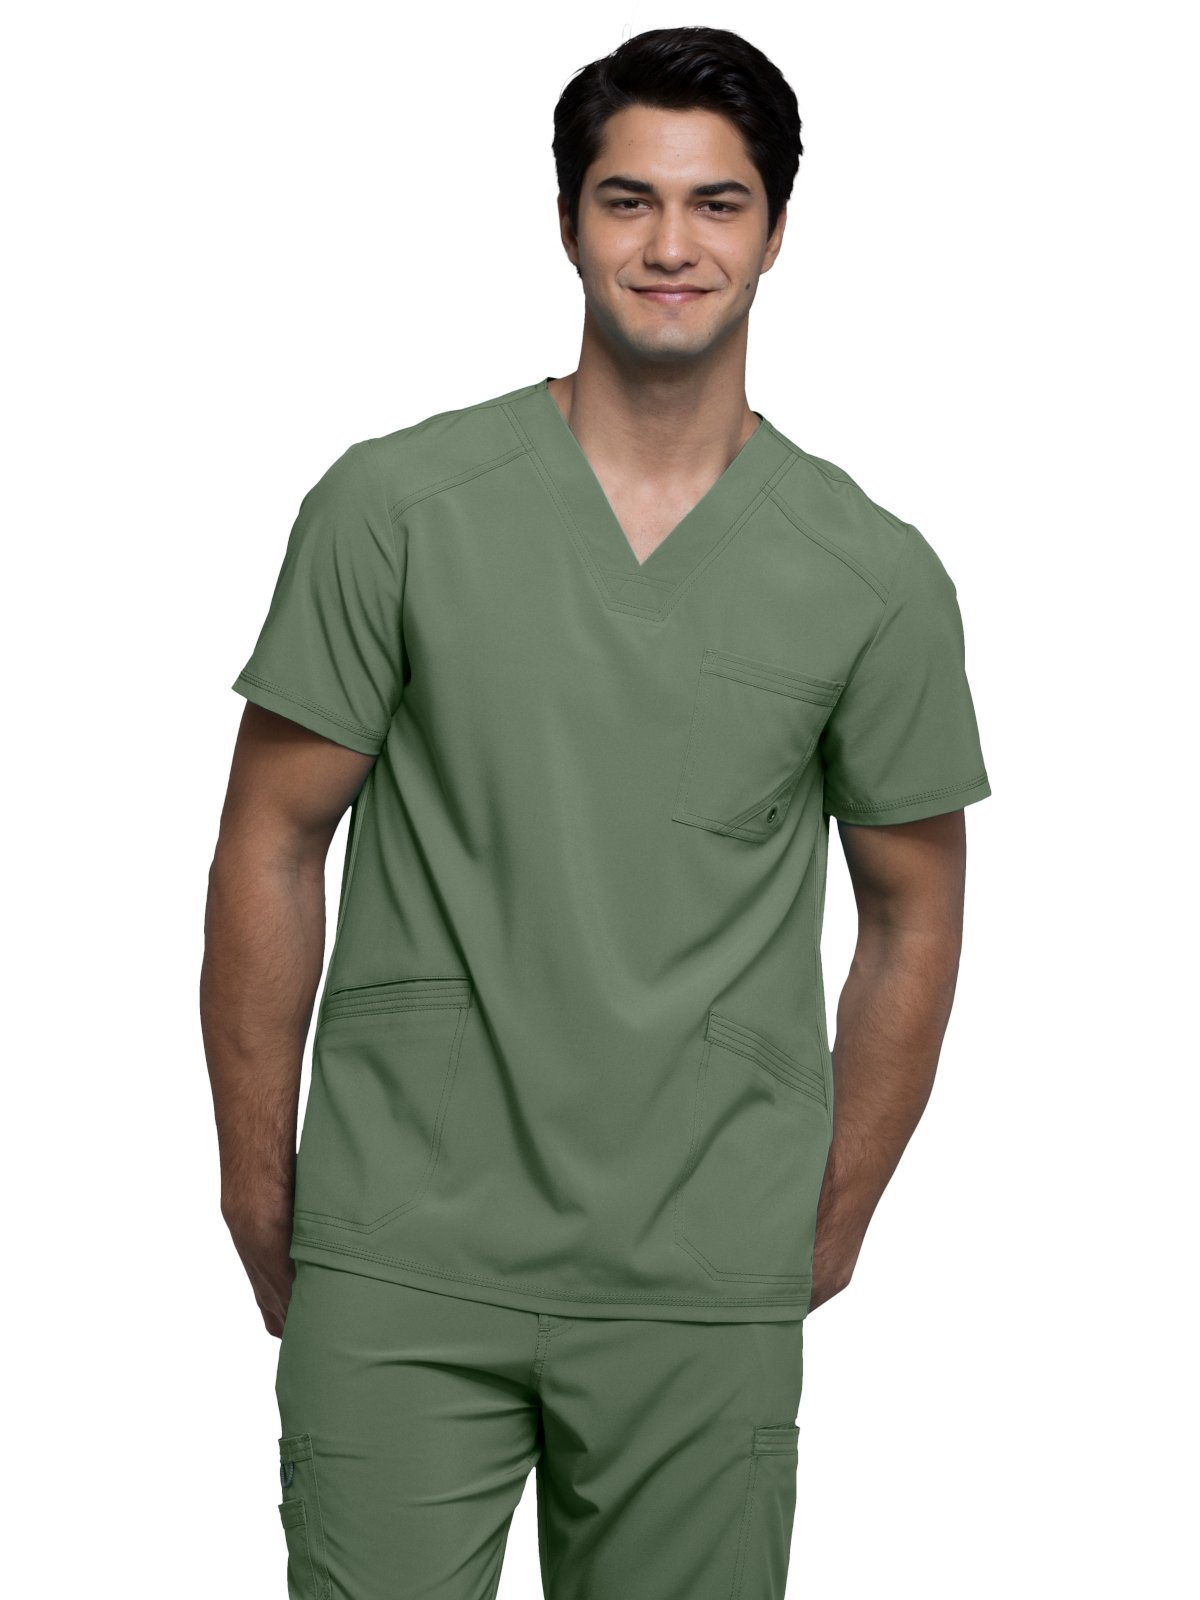 Cherokee Infinity by Men's V-Neck Solid Scrub Top XXXX-Large Olive